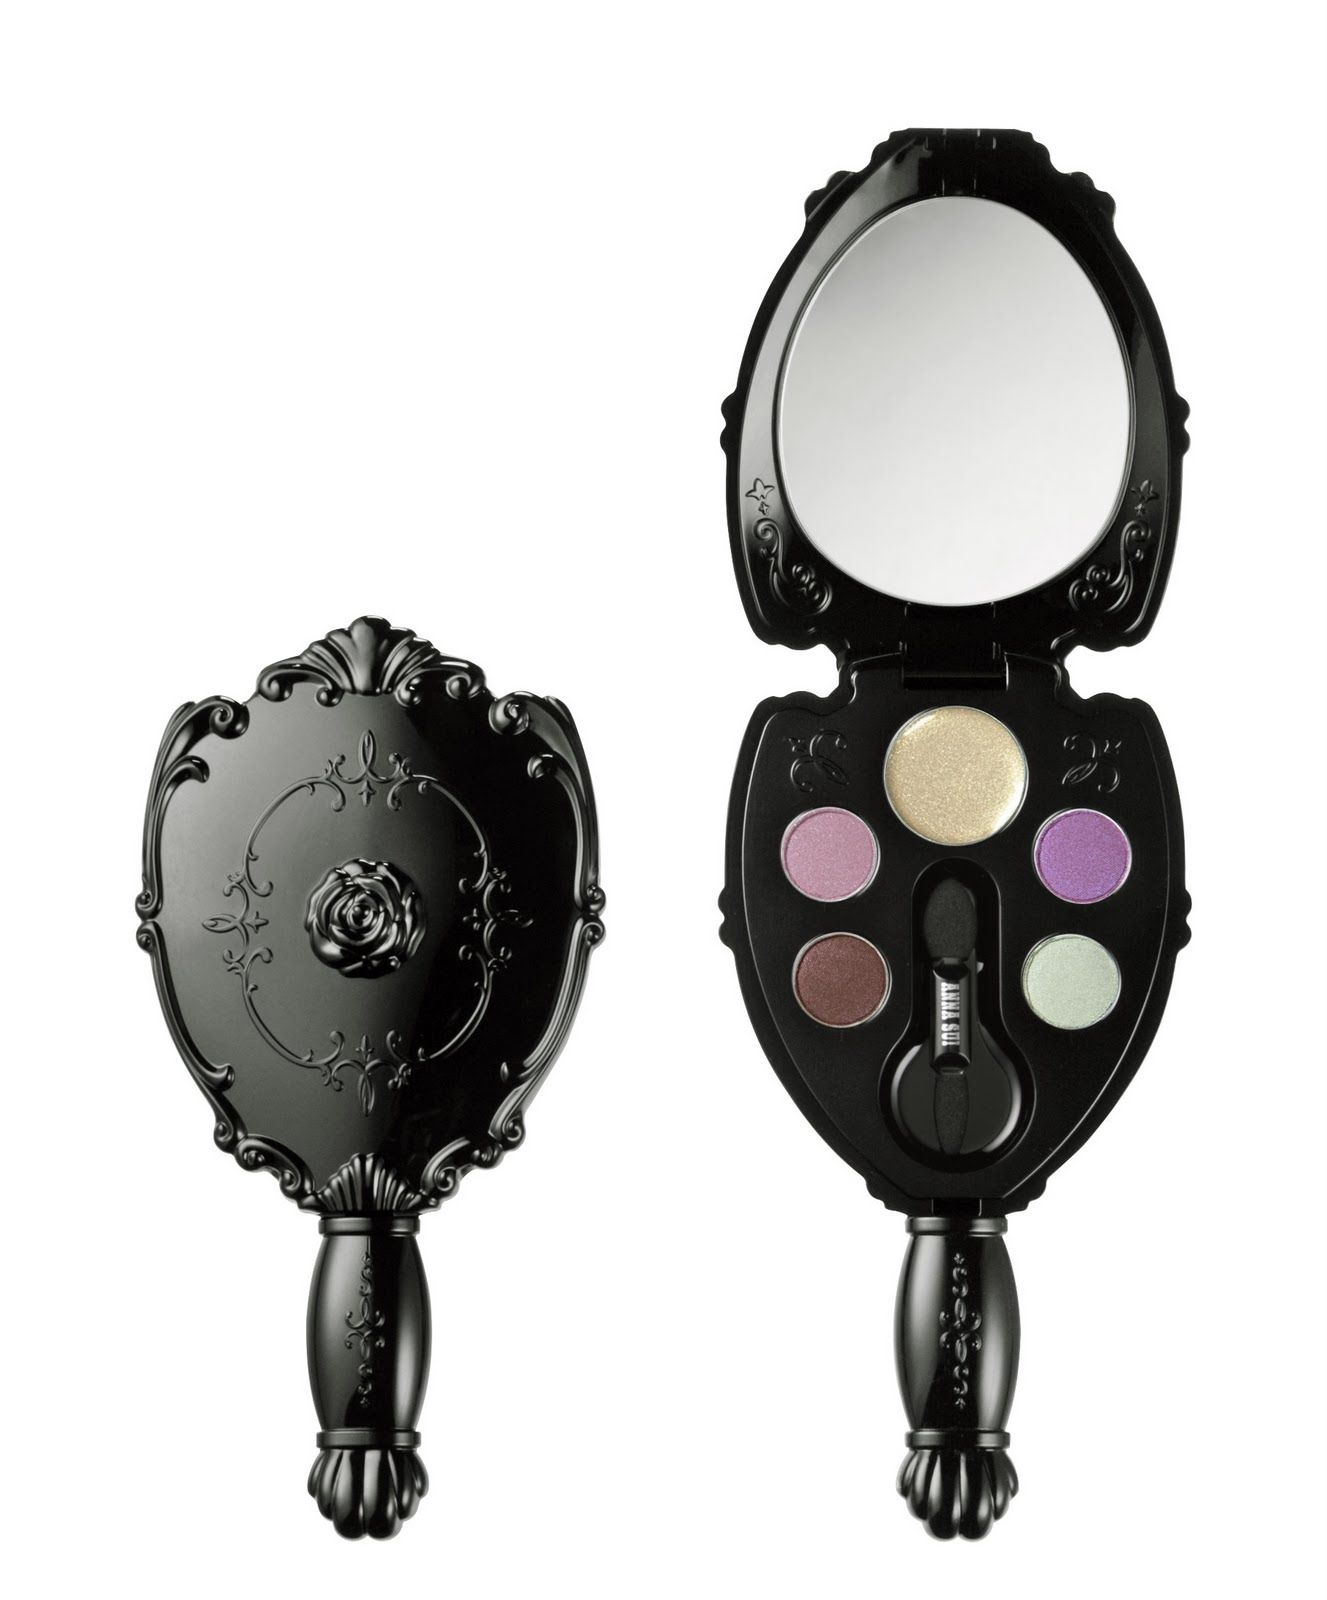 Anna Sui Holiday Cosmetics Collection 2009